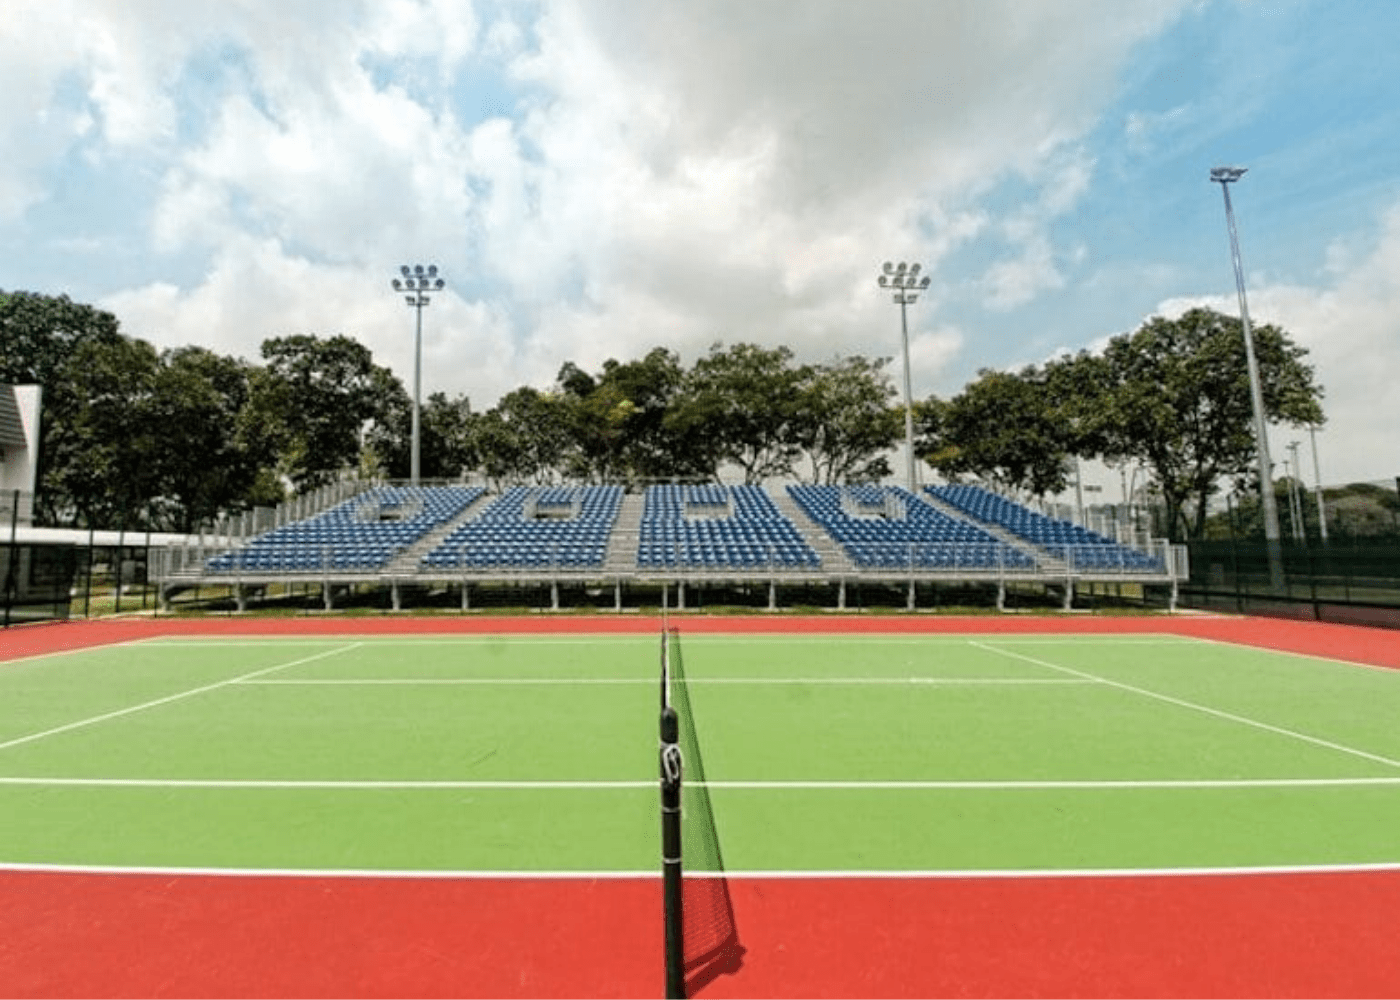 Kallang Tennis Centre   Where to get tennis lessons for kids in Singapore